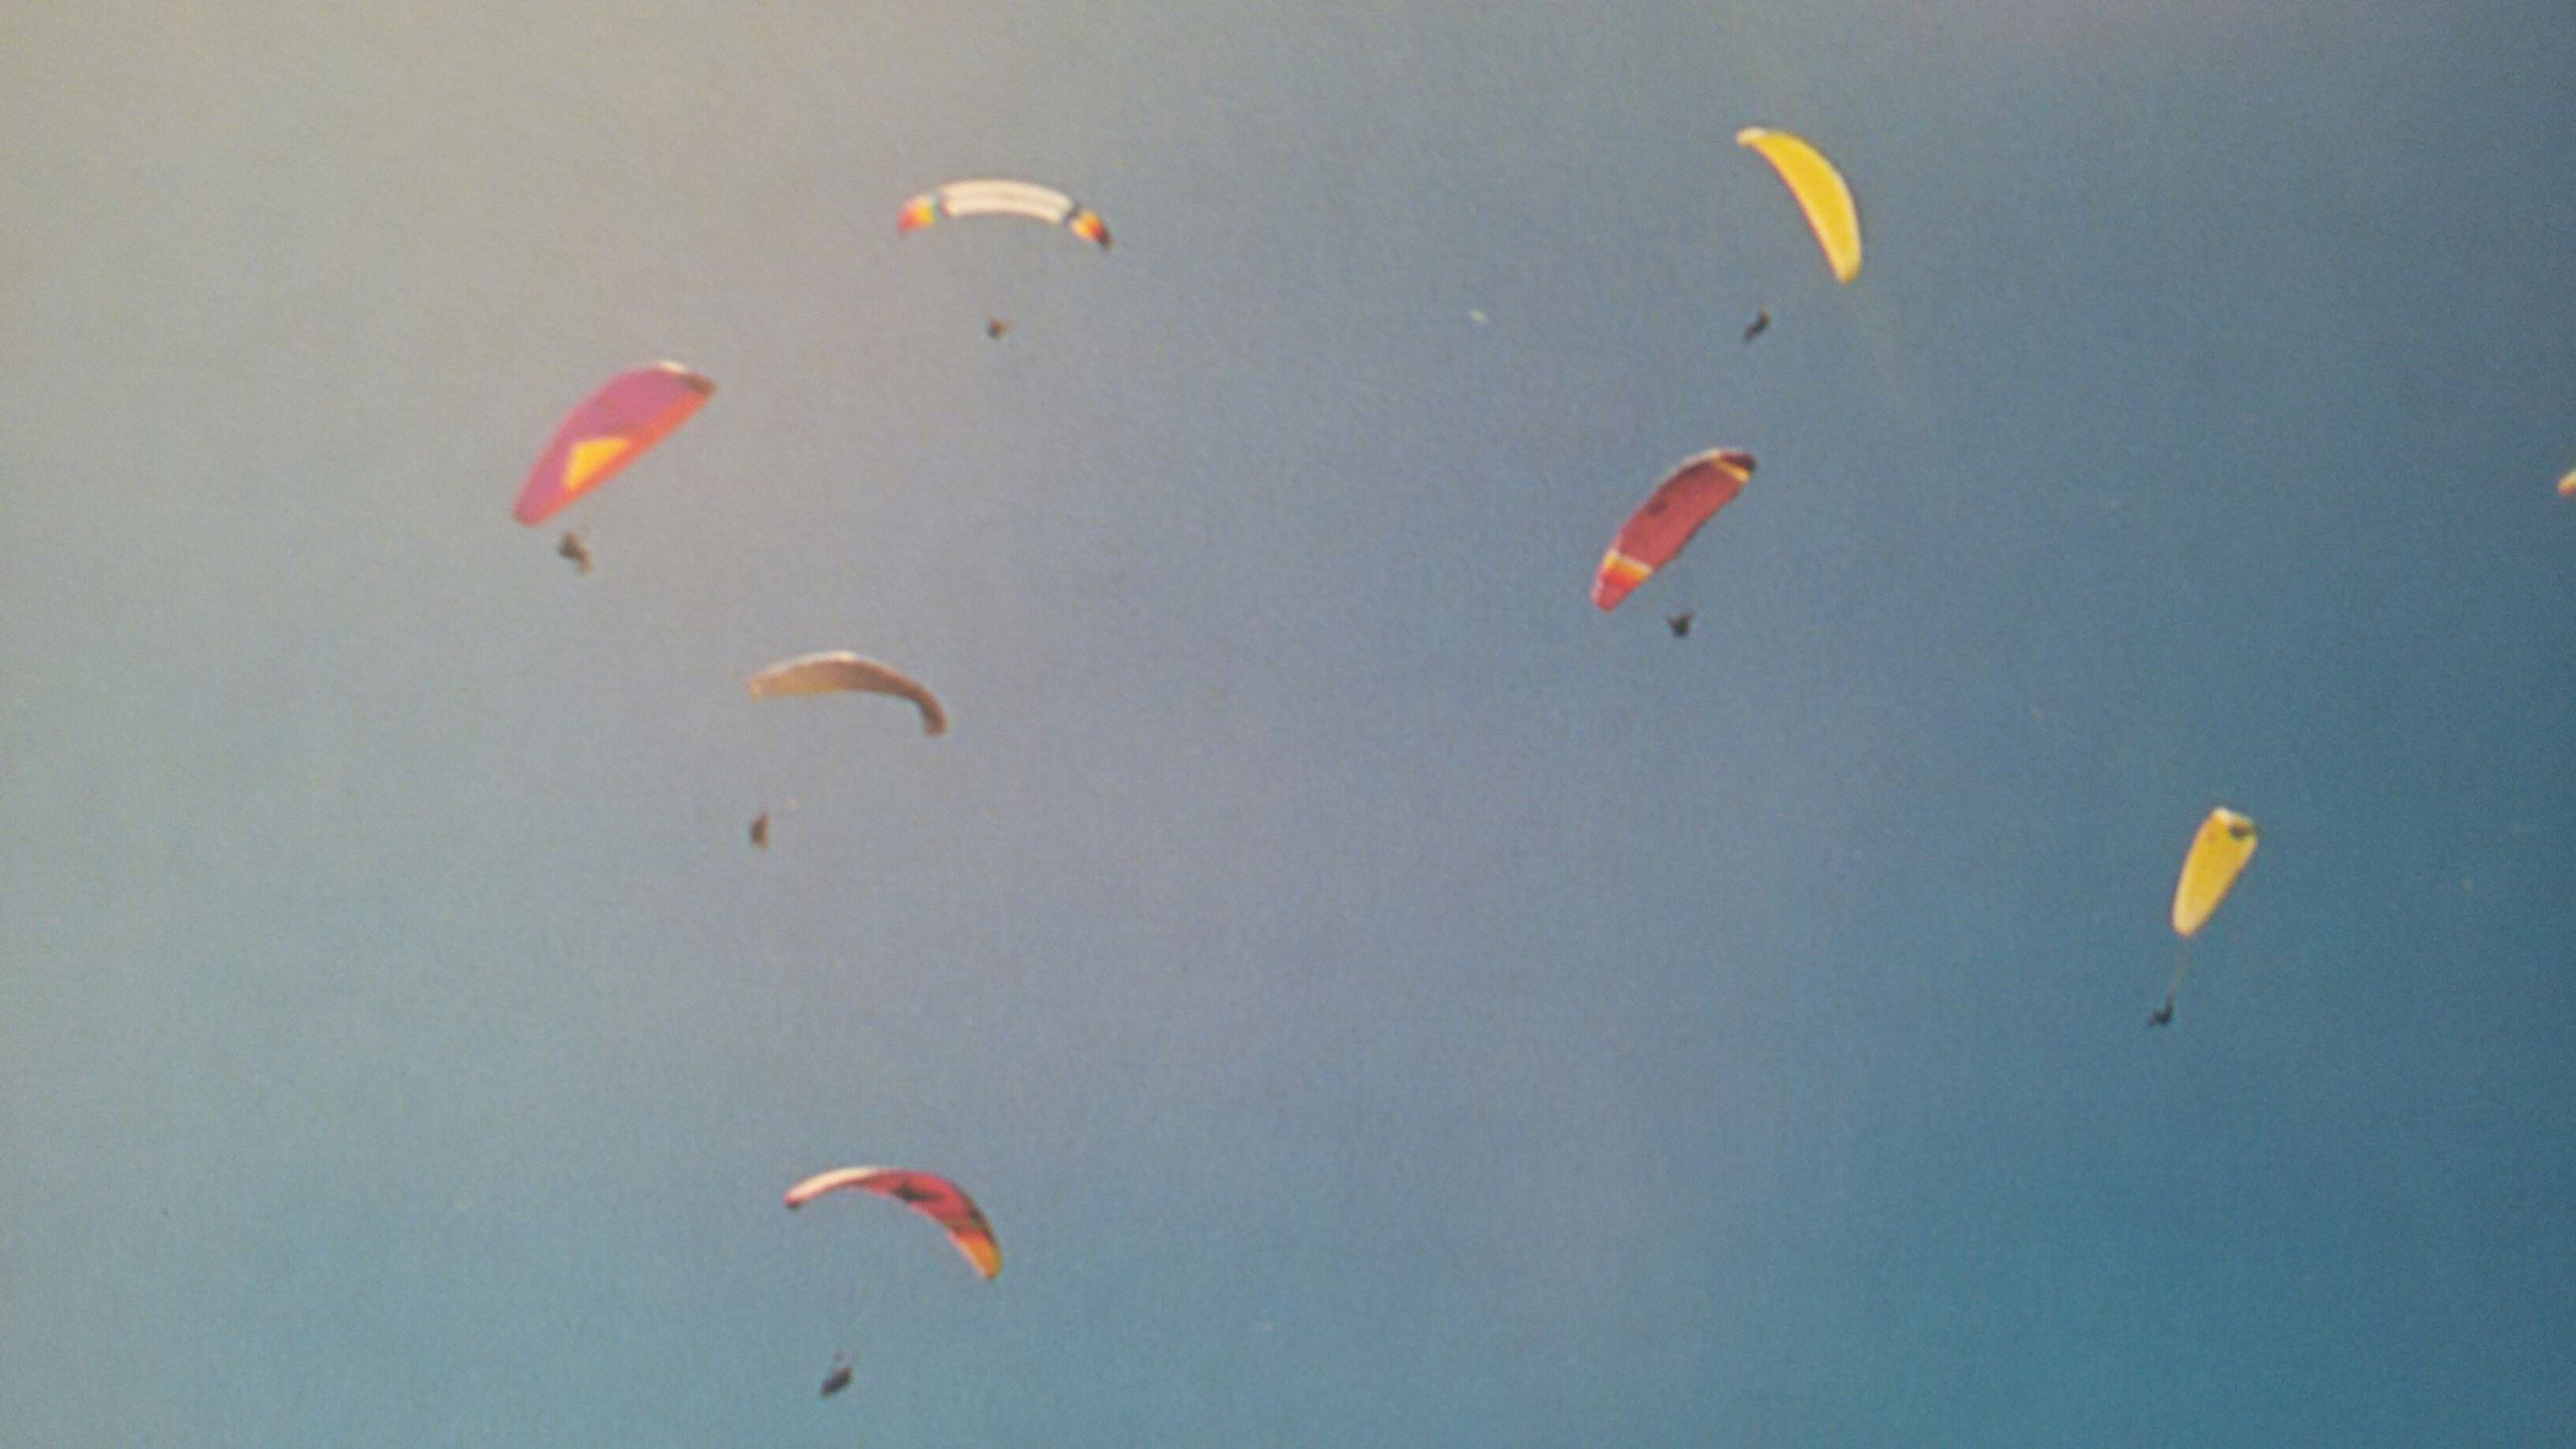 flying, mid-air, parachute, multi colored, paragliding, adventure, extreme sports, underwater, exhilaration, fish, sea life, nature, swimming, blue, high angle view, beauty in nature, tranquility, day, undersea, water